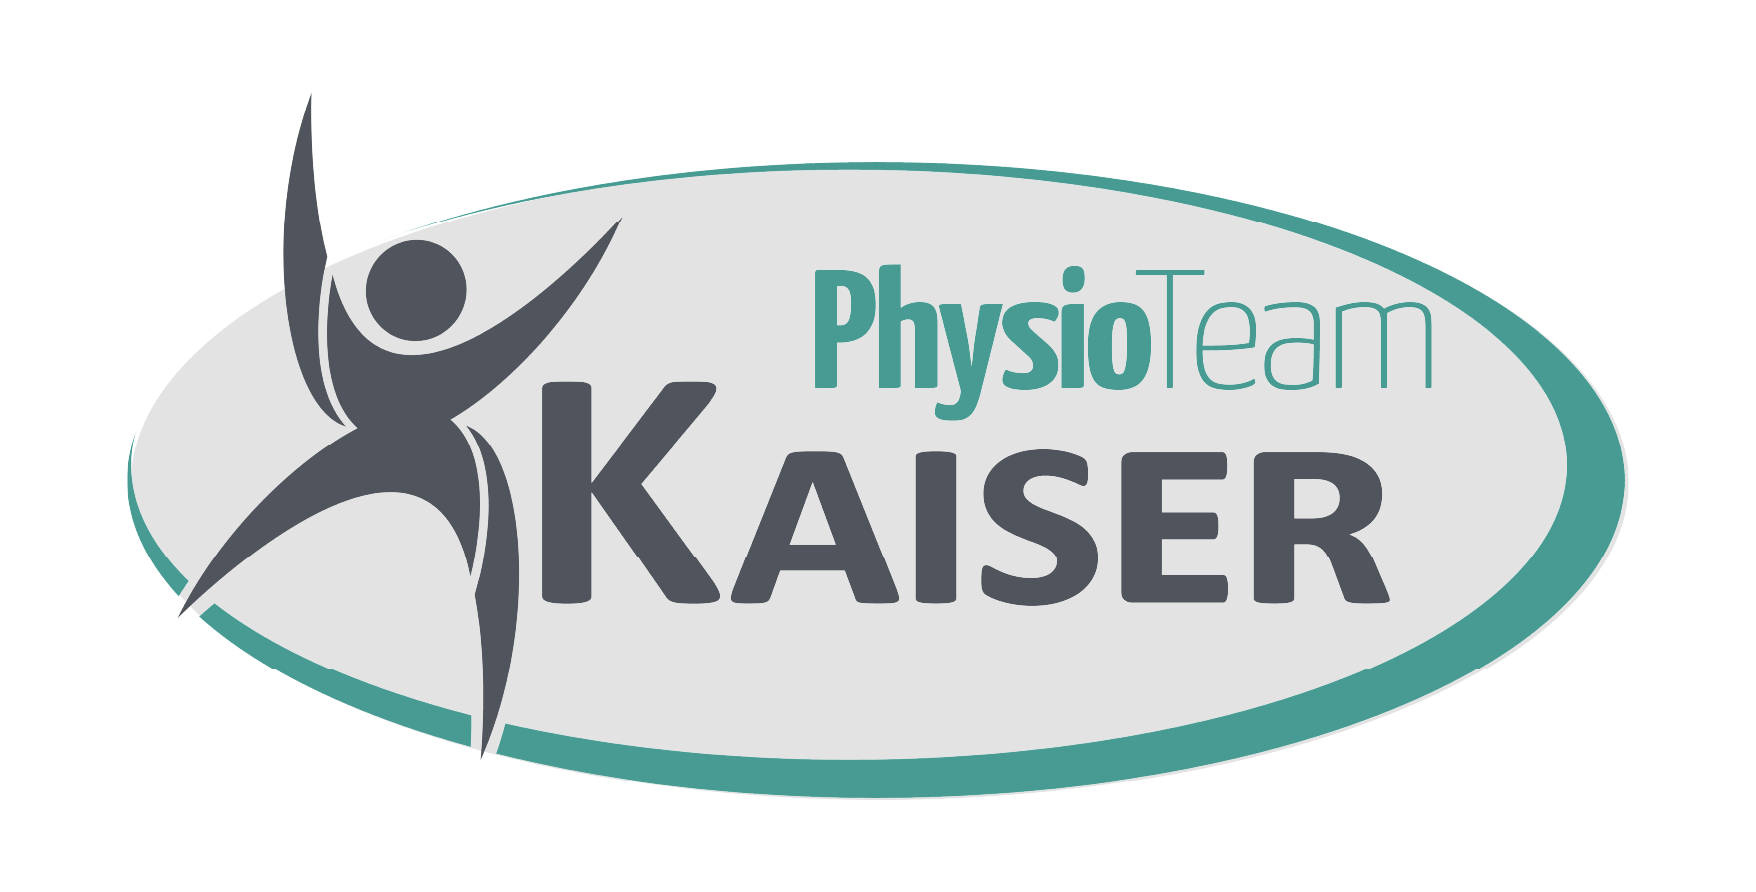 Physioteam Kaiser